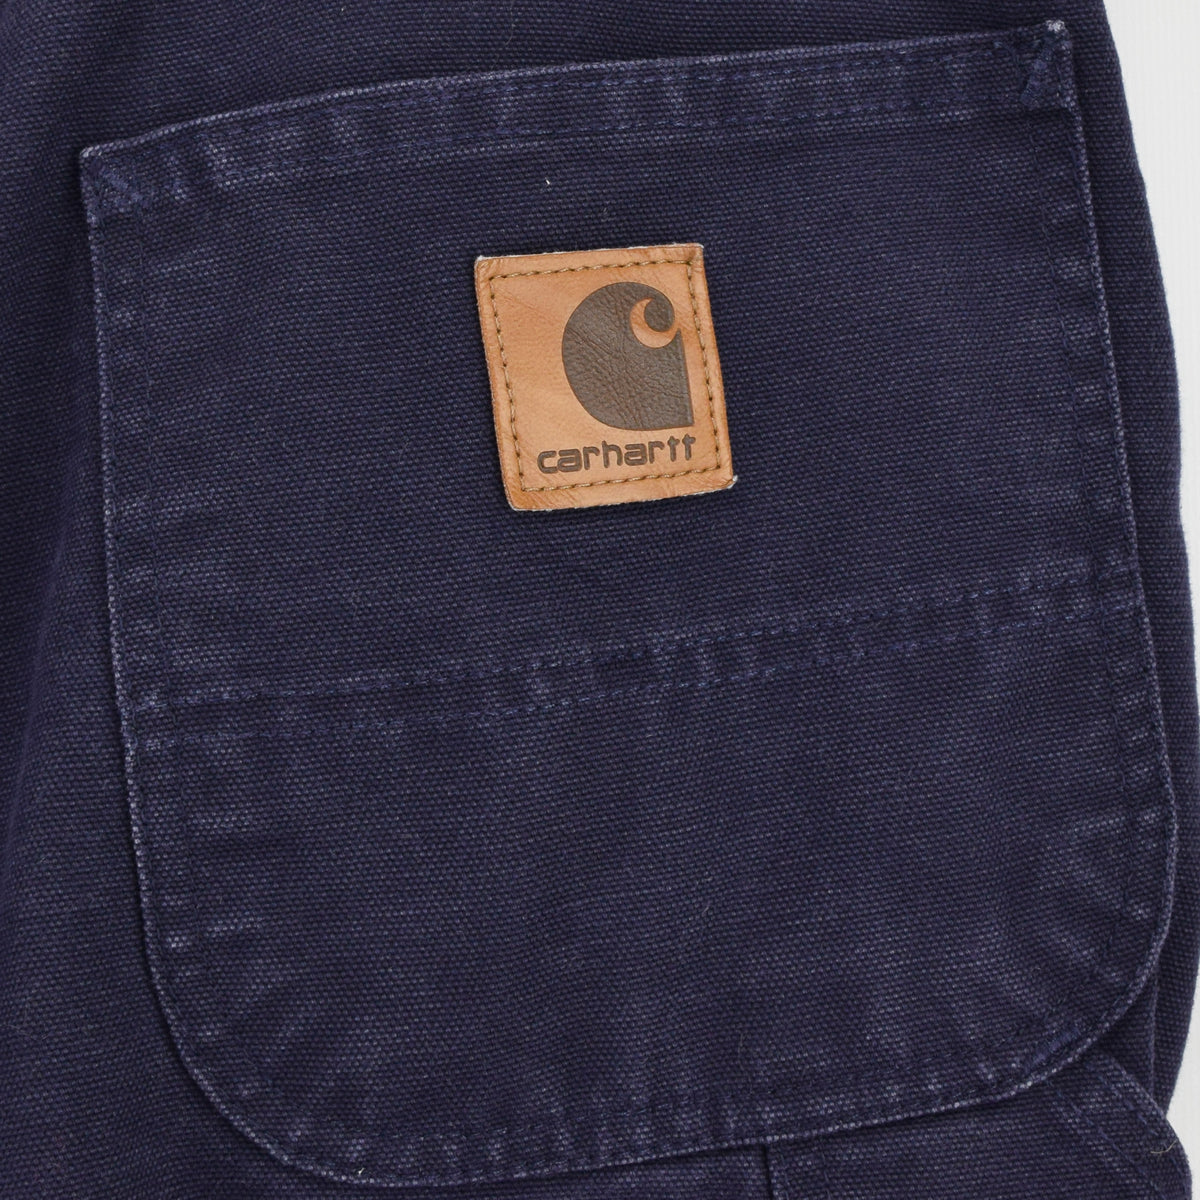 Vintage Carhartt Duck Canvas Utility Work Pant Blanket Lined 36 W 34 L back pocket